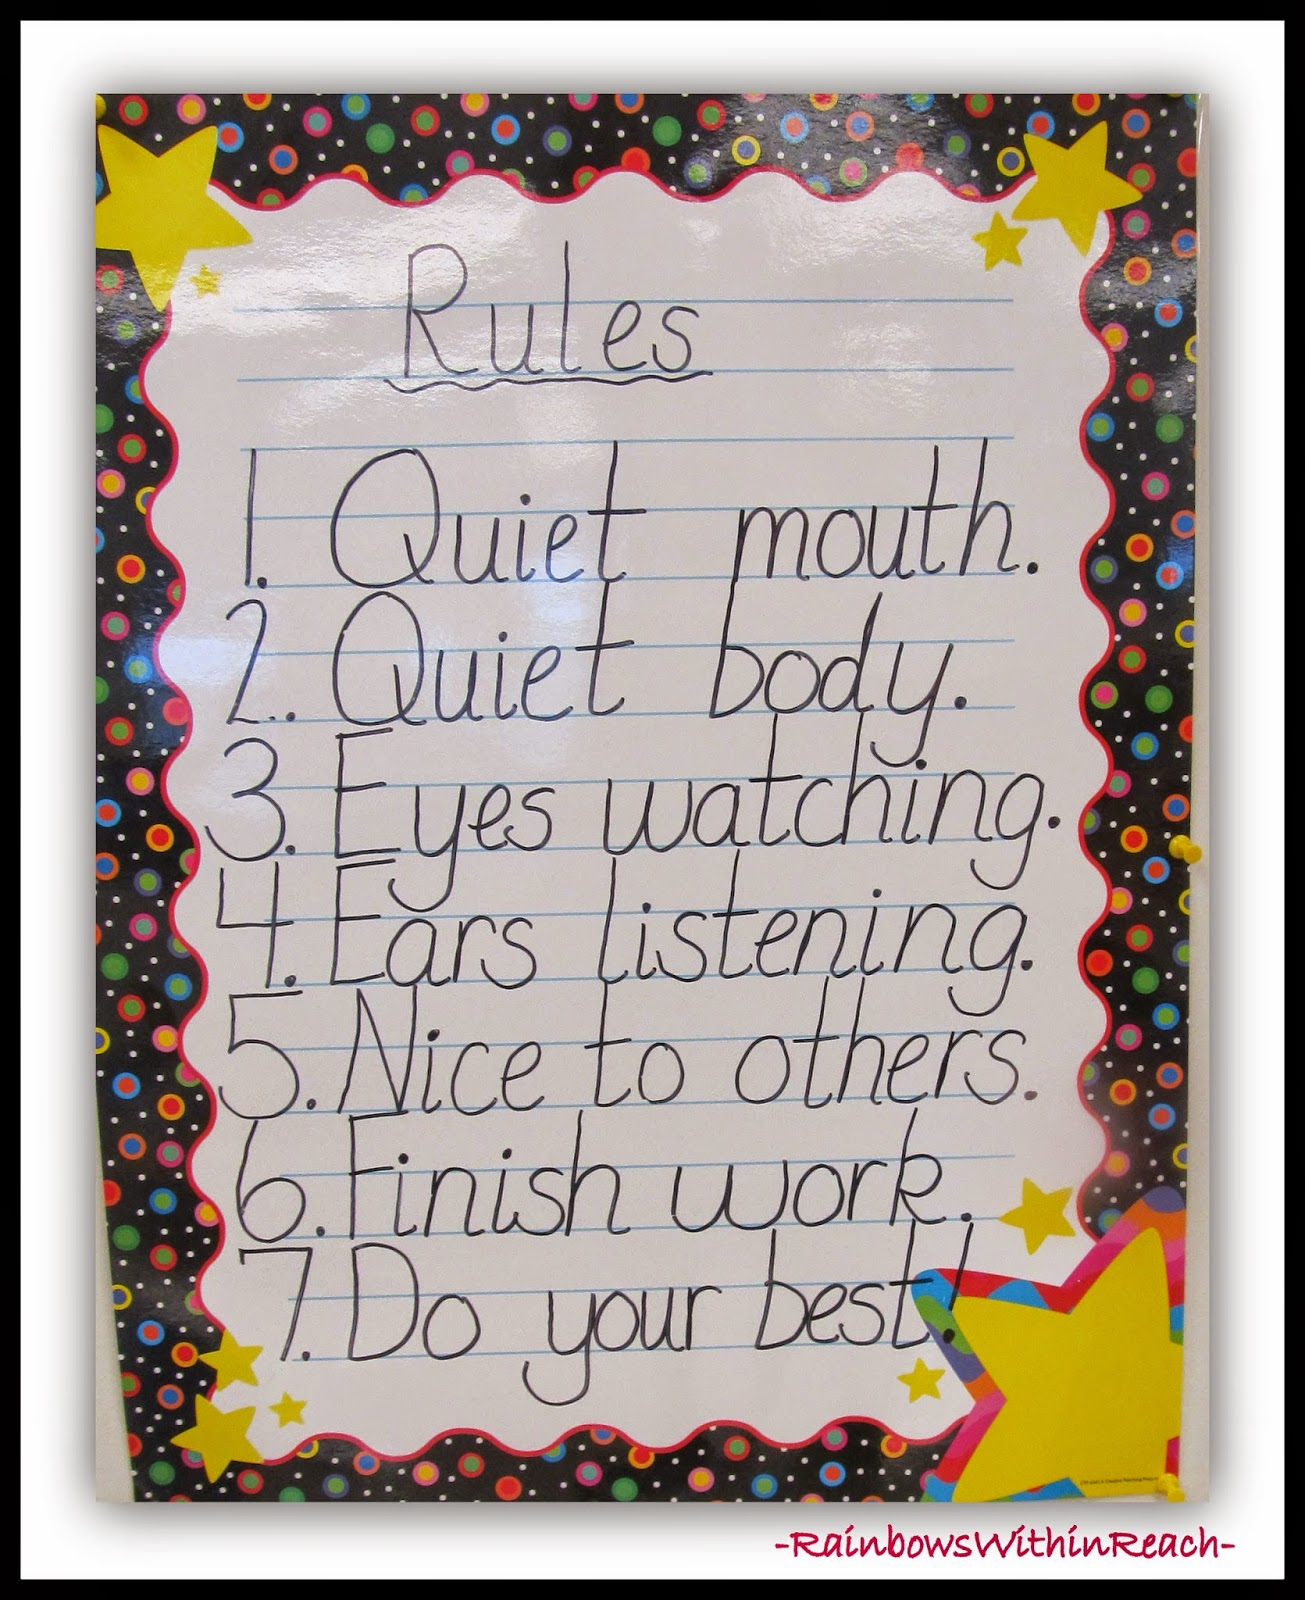 Classroom Rule Chart: Rules RoundUP at RainbowsWithinReach